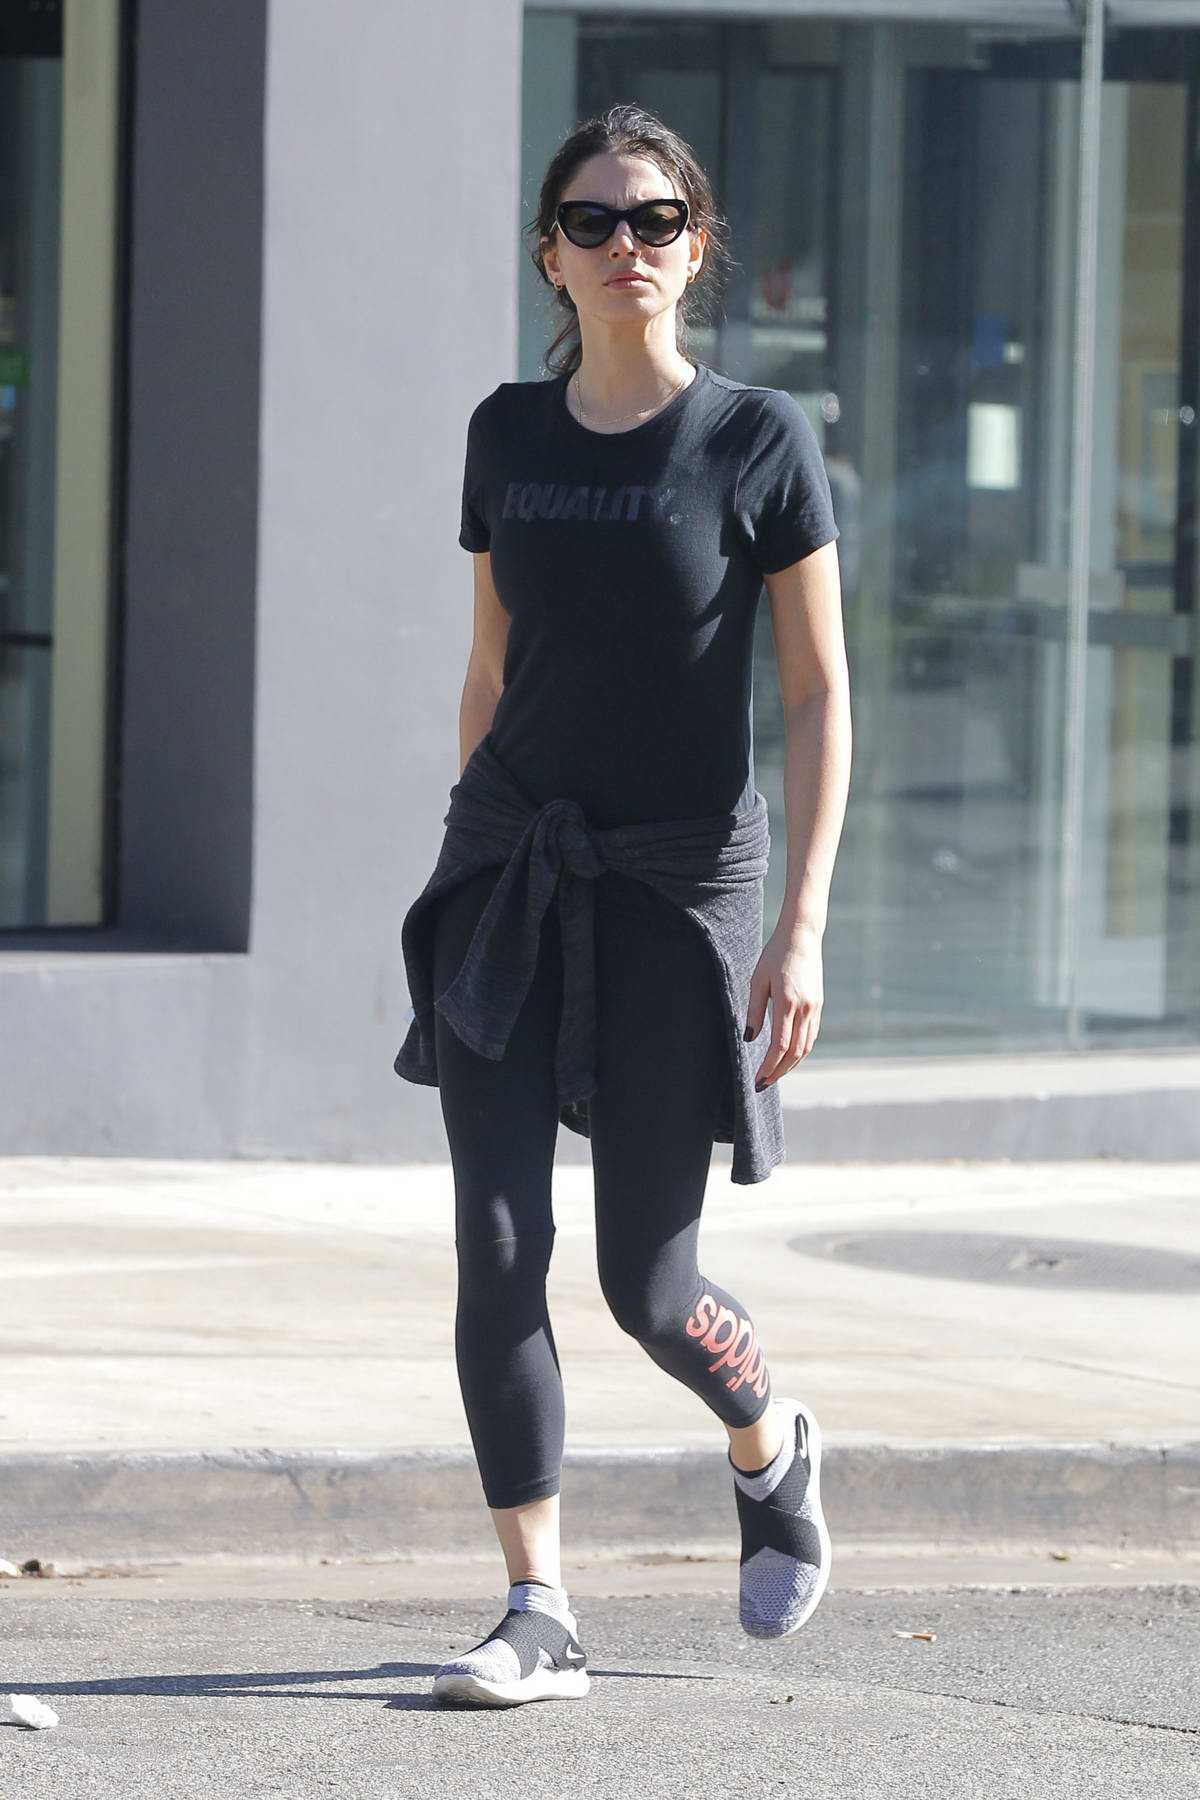 Jessica Gomes leaving after her workout sessions in Beverly Hills, Los Angeles